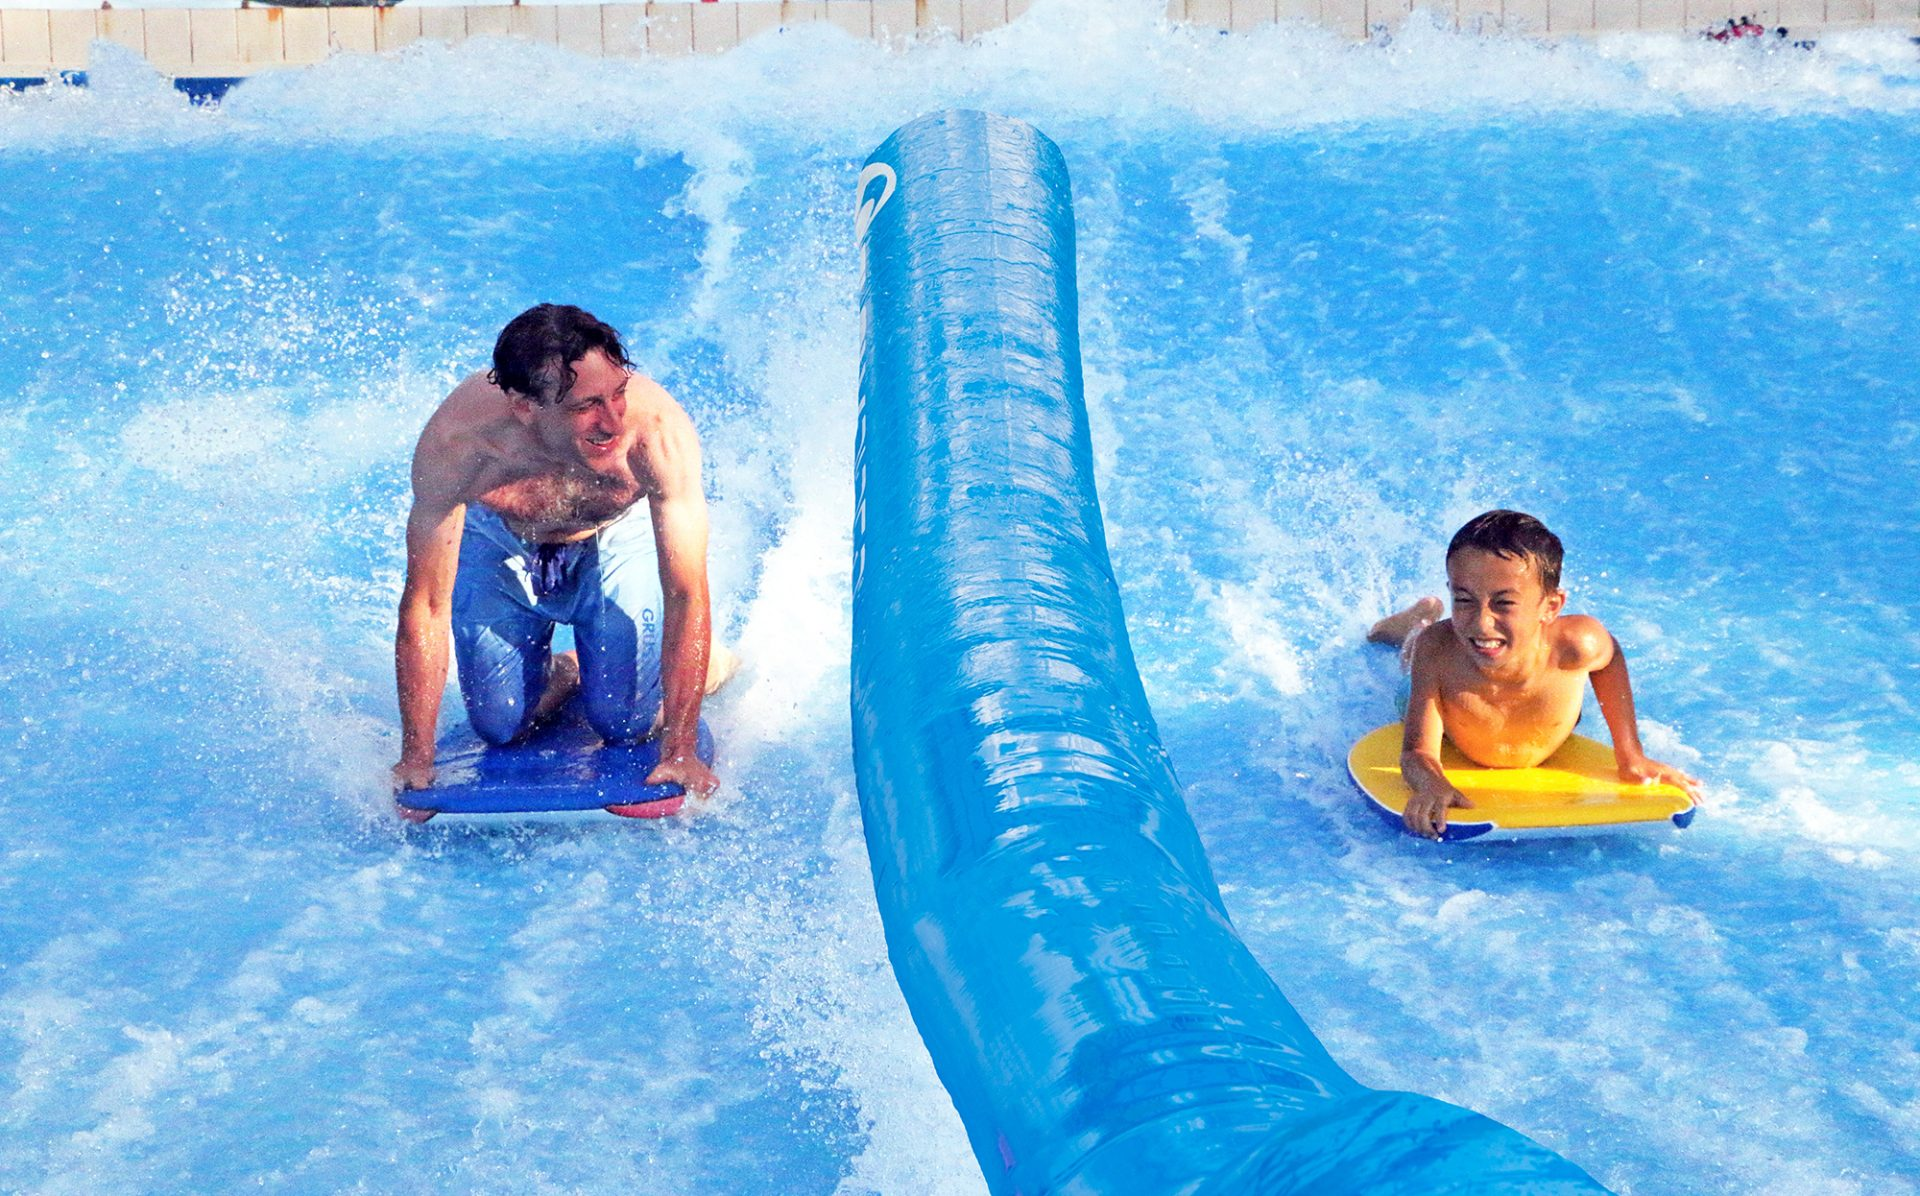 father and son riding on flowrider surf ride